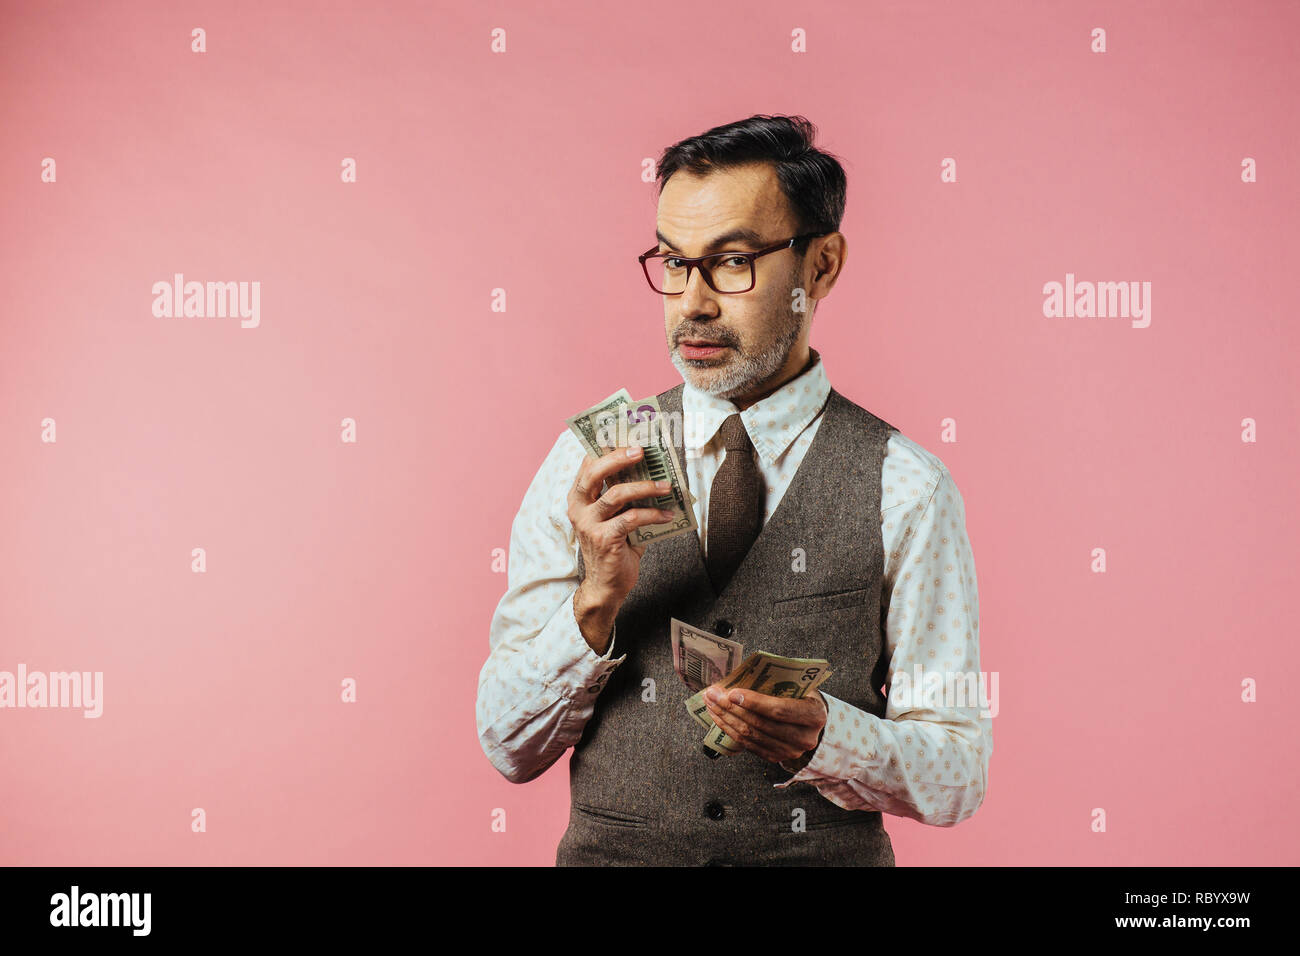 Portrait of a mature man in brown vest holding dollar bills and looking at camera, isolated on pink studio background Stock Photo